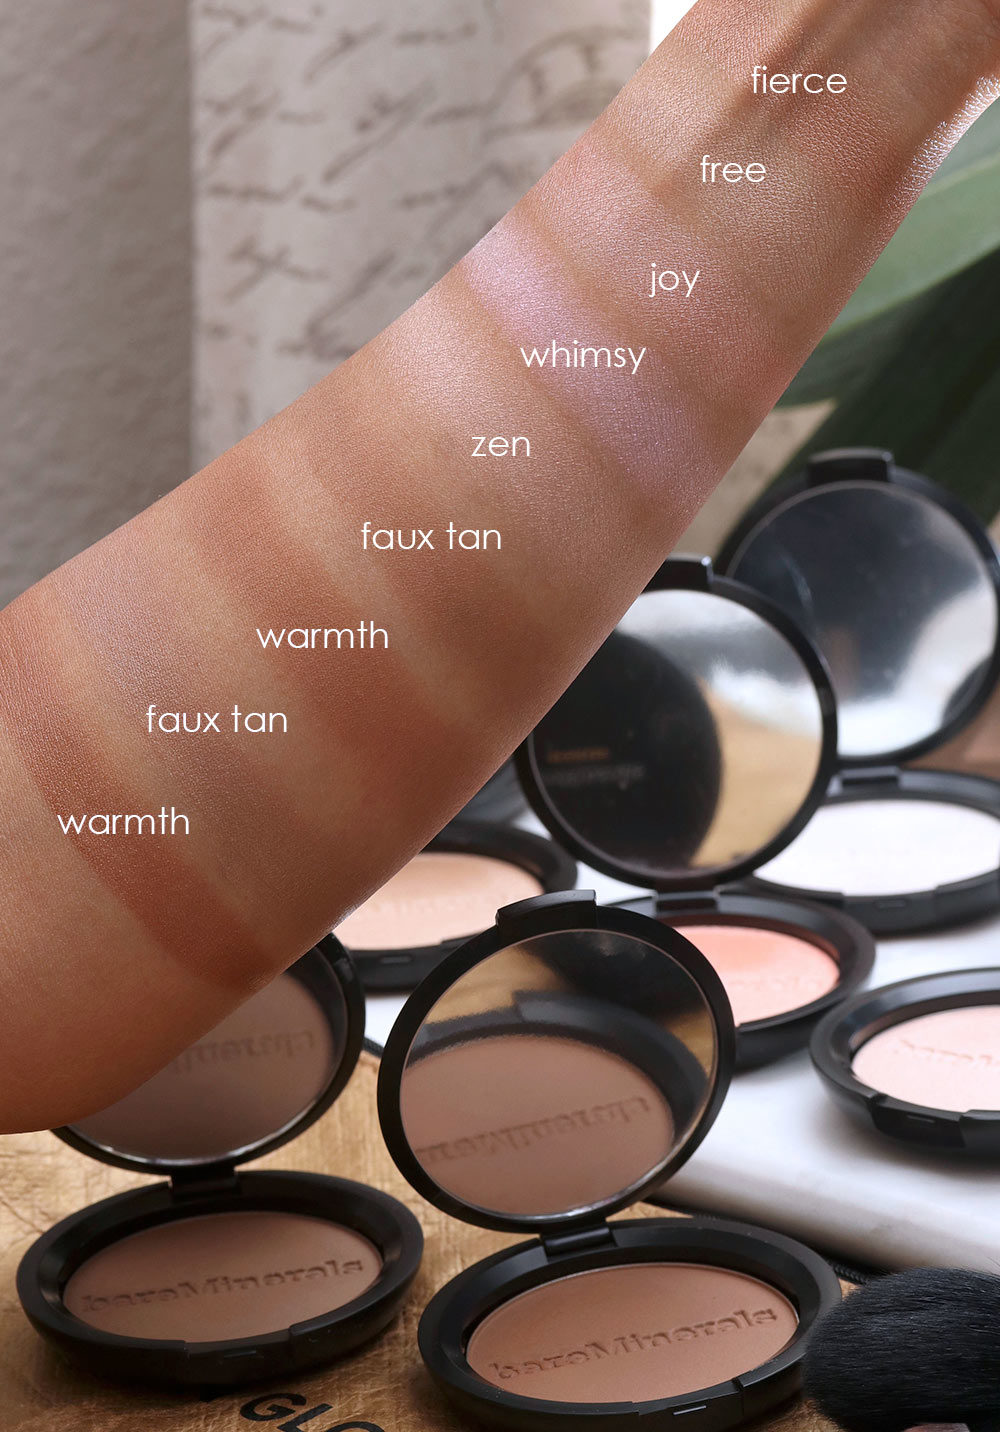 bareminerals glow collection swatches